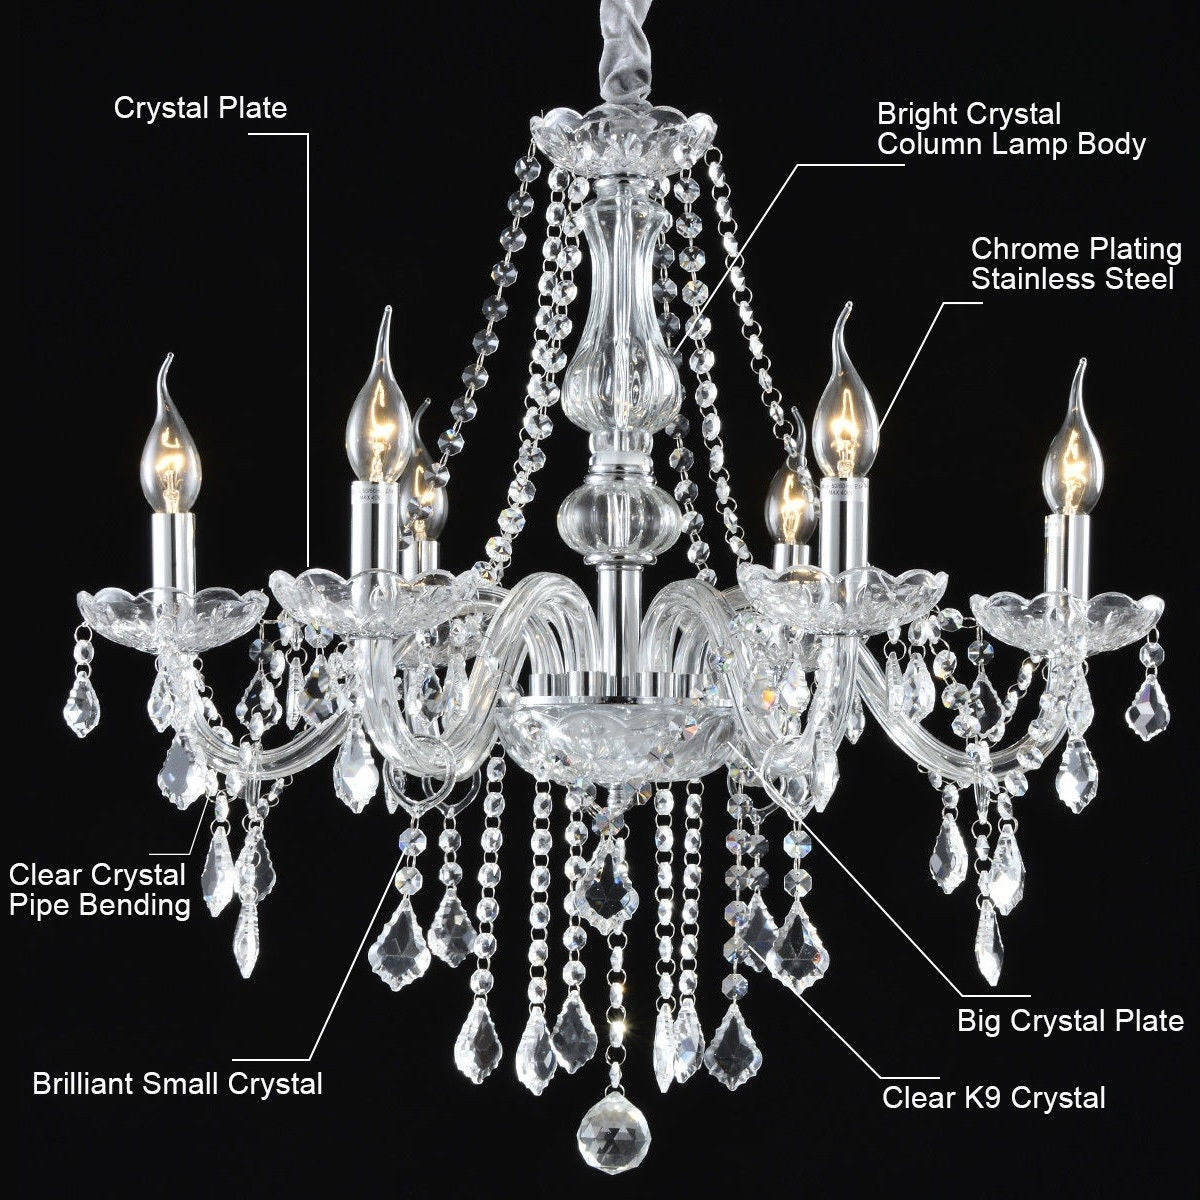 Costway elegant crystal chandelier modern 6 ceiling light lamp costway elegant crystal chandelier modern 6 ceiling light lamp pendant fixture lighting free shipping today overstock 24429974 arubaitofo Choice Image